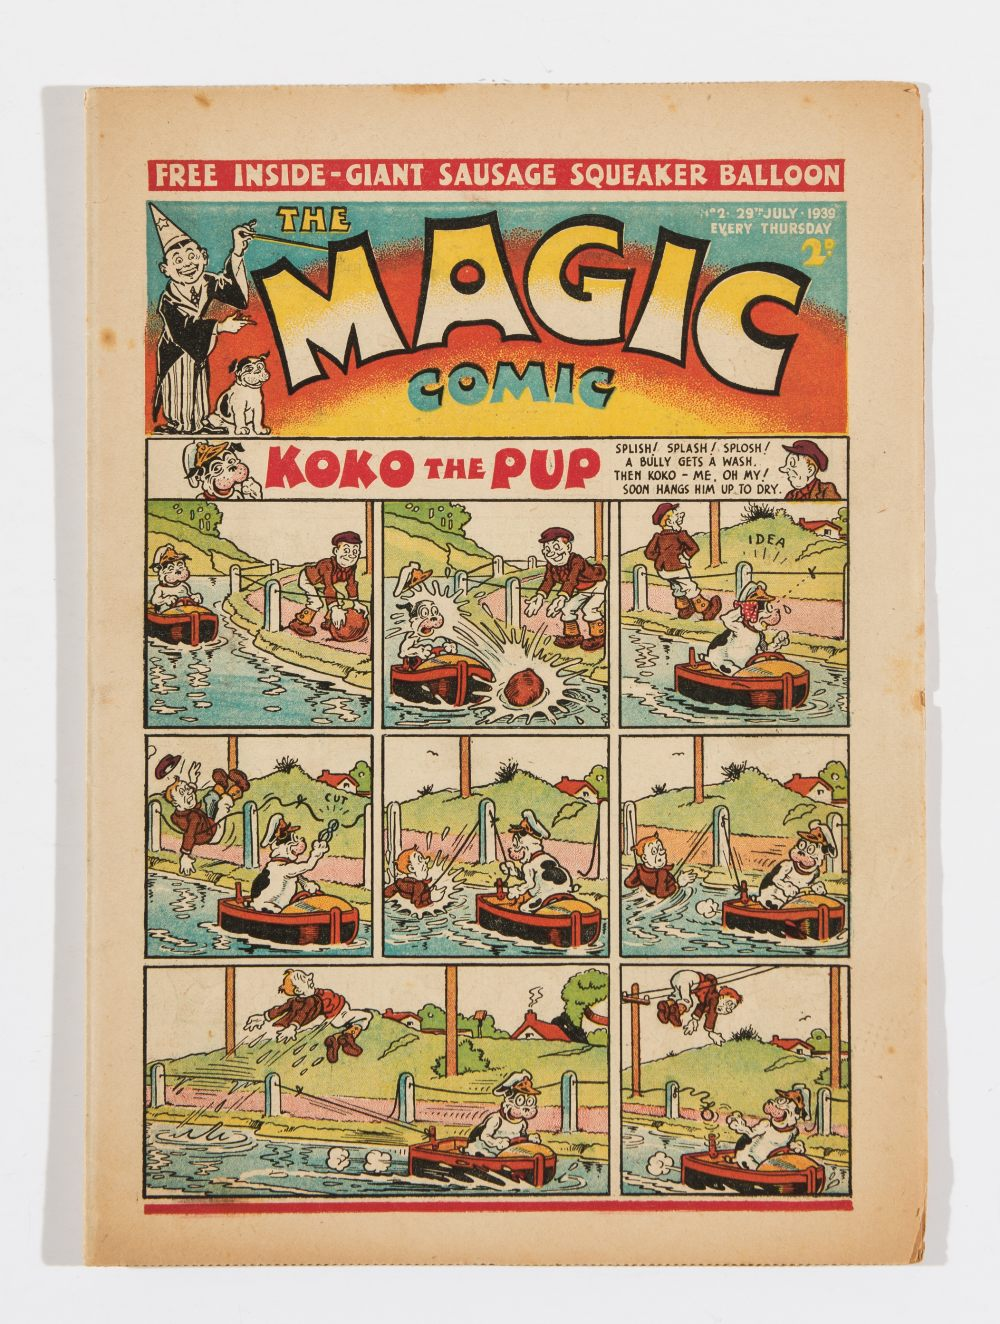 Lot 34 - Magic No 2 (1939) Koko The Pup by E H Banger and Peter Piper by Dudley Watkins. Bright fresh cover